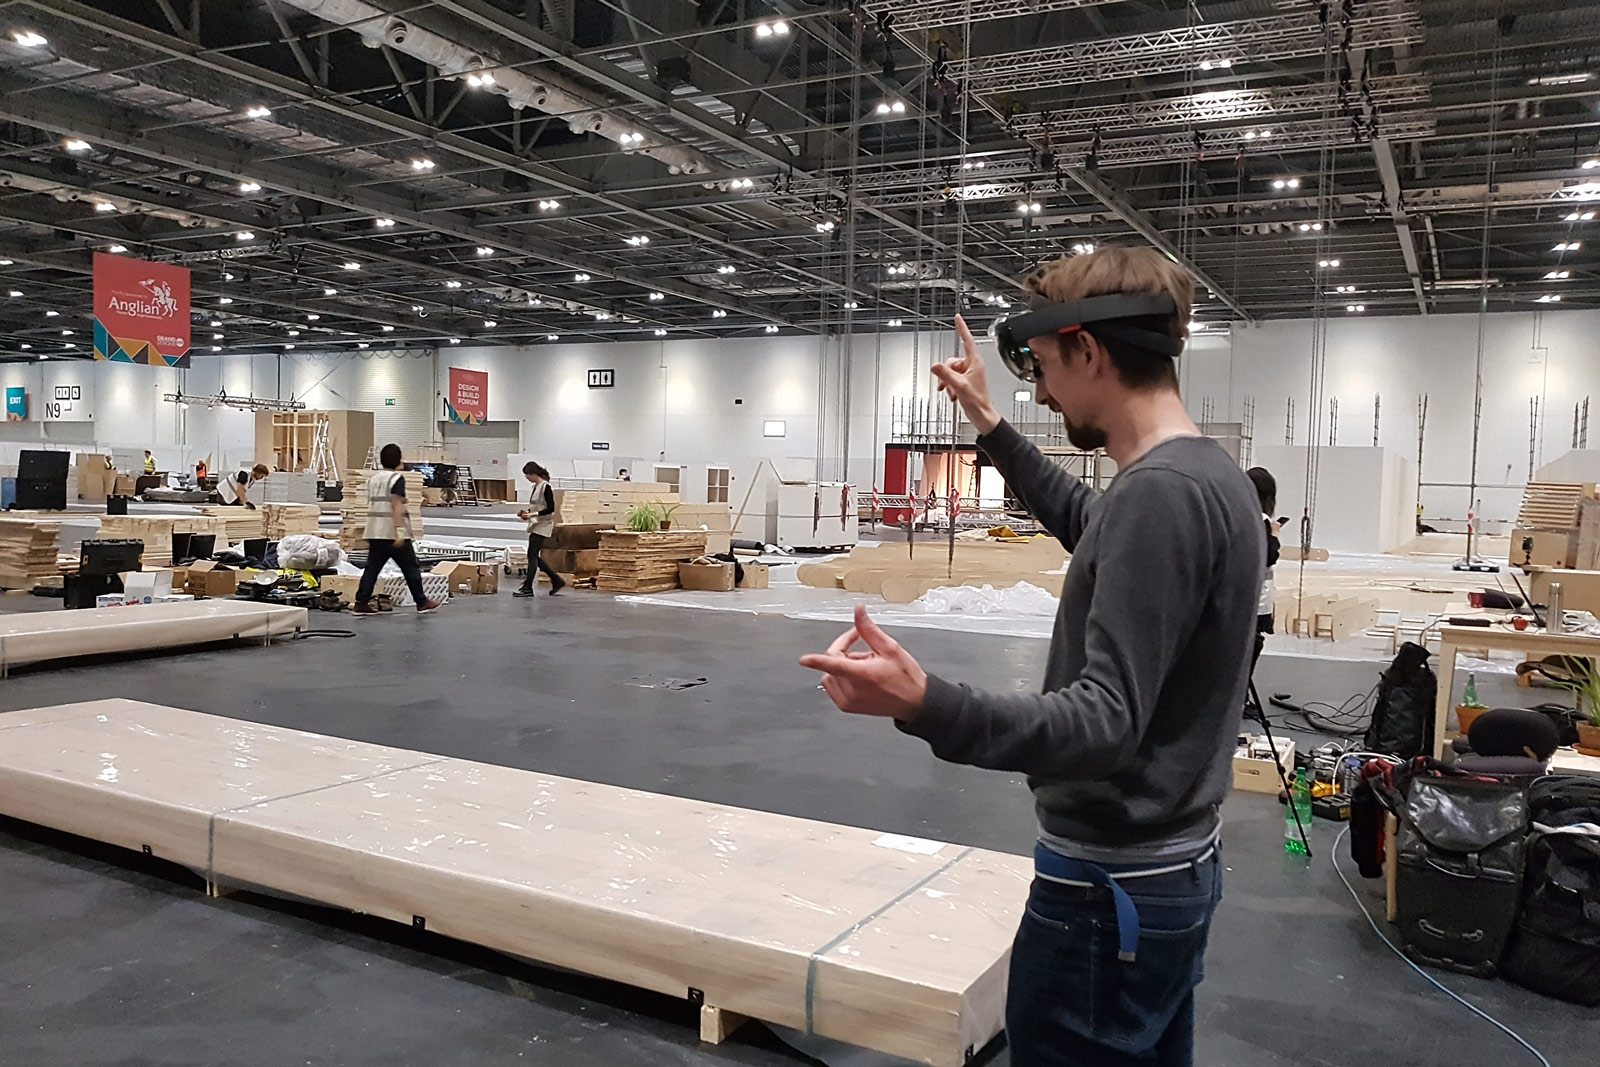 Studio Bark is setting up the AR Headsets for their show at Grand Designs Live